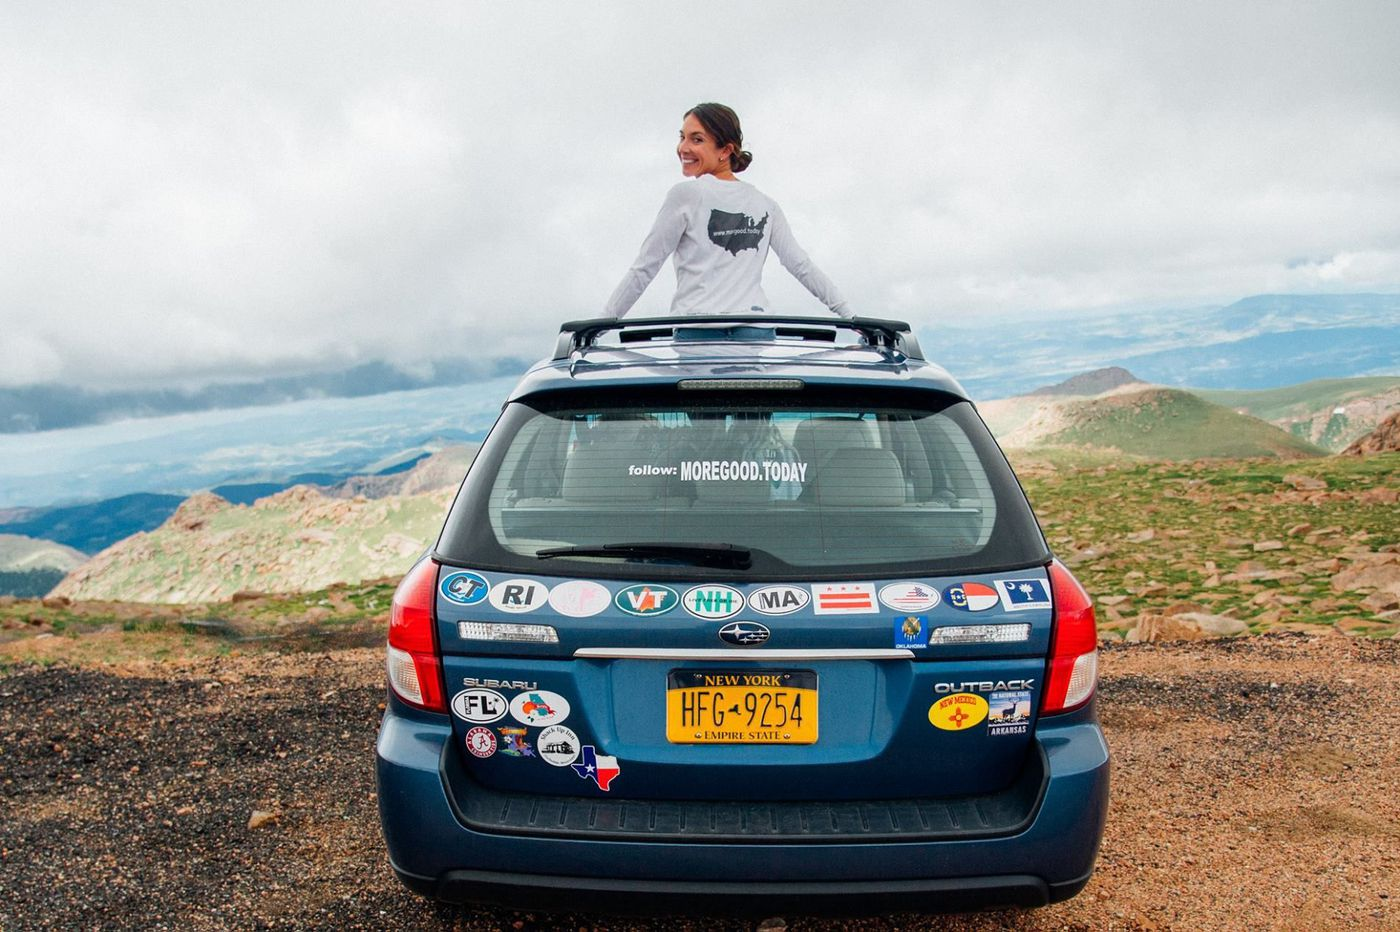 A quest to collect stories of kindness has driven her to 47 states (and counting)